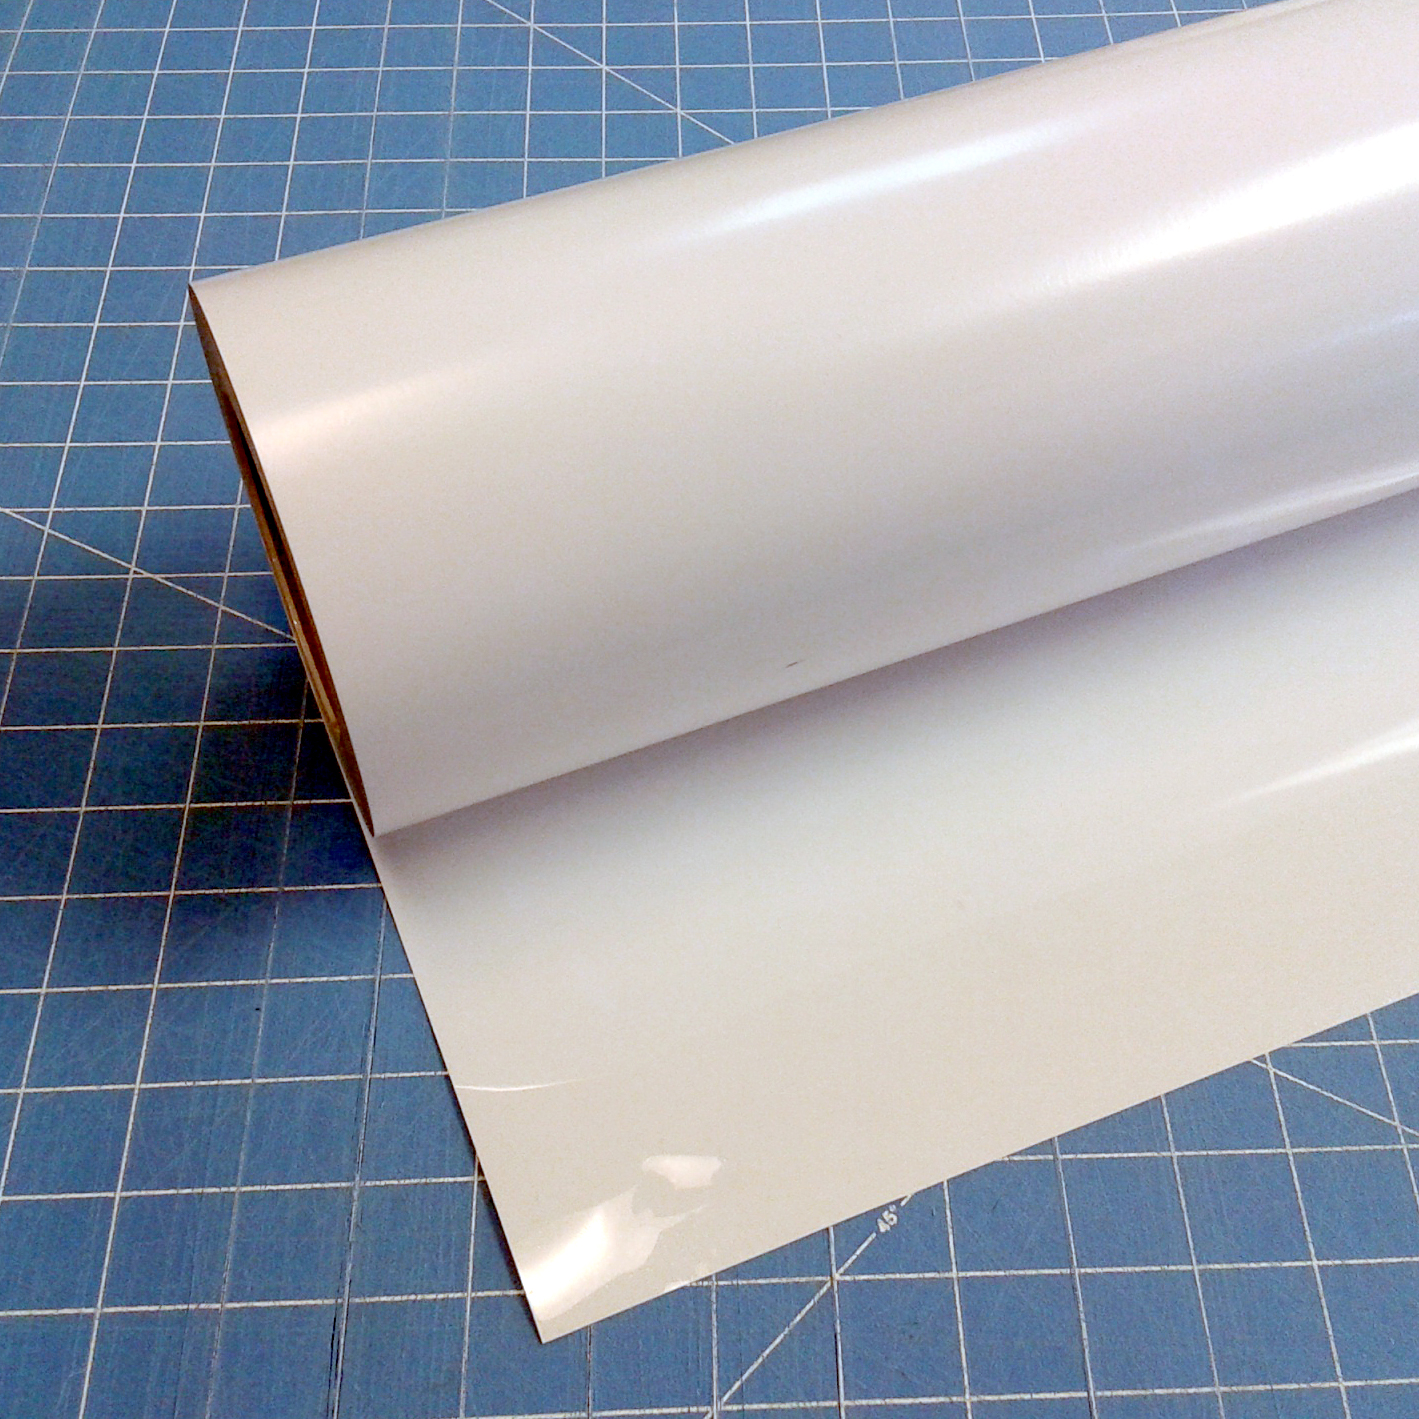 "White Siser Easyweed 12"" x 30' (feet) Iron on Heat Transfer Vinyl Roll HTV"